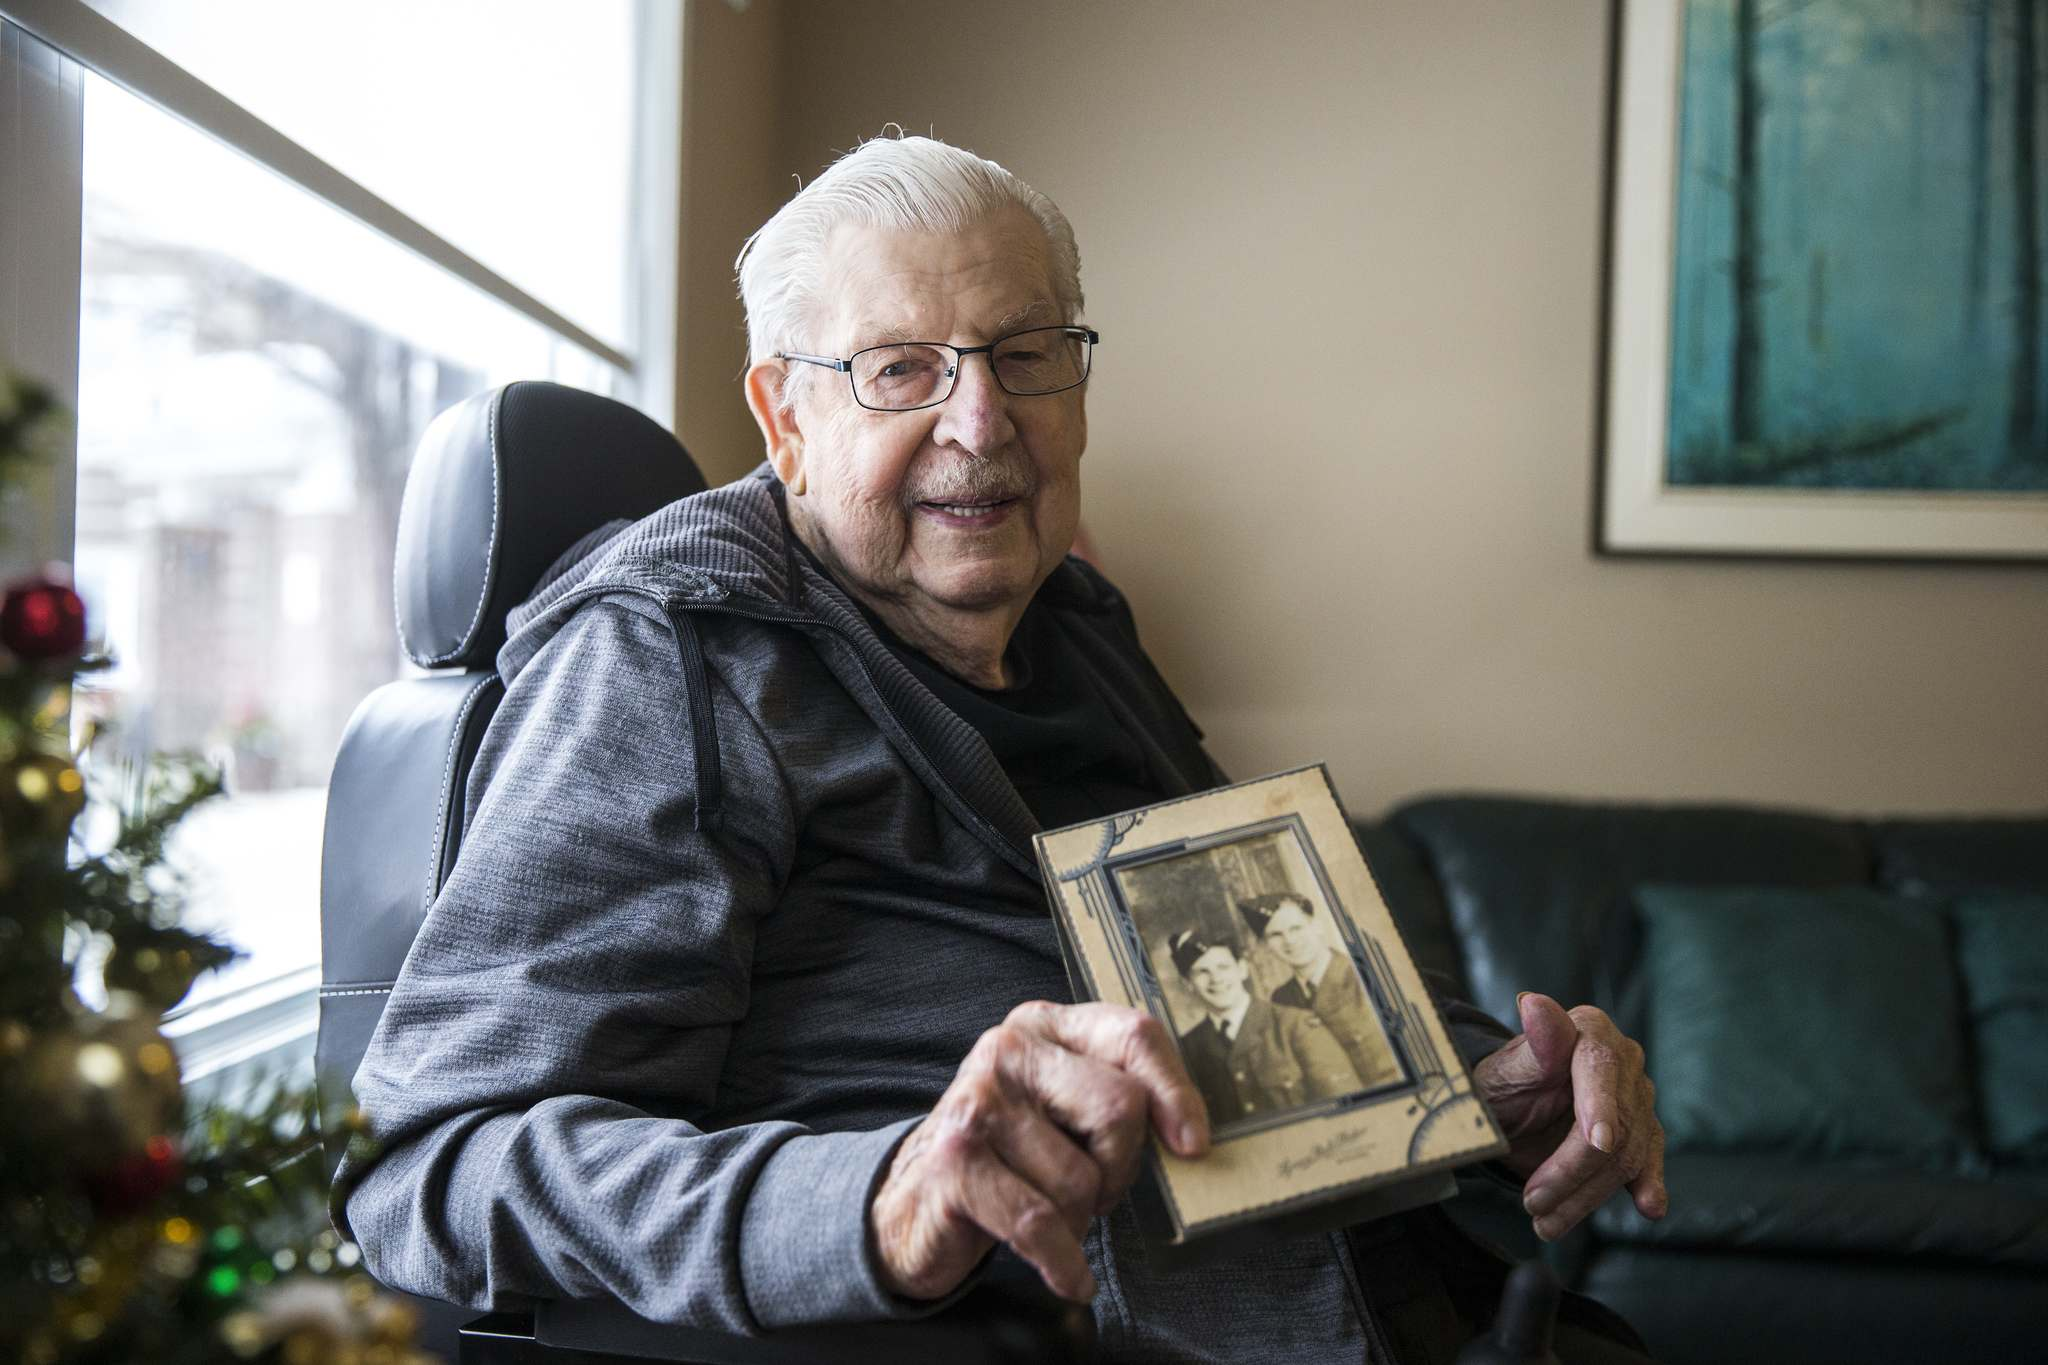 MIKAELA MACKENZIE / WINNIPEG FREE PRESS</p><p>Henry Golis, a 93-year-old Transcona resident who survived a plane crash in WWII, poses with a wartime photo of him (left) and his brother, Chester Golis, when the two were 17 and 22. Transcona's city councillor wants to give an honorary street name to a stretch of Regent Avenue for him.</p>